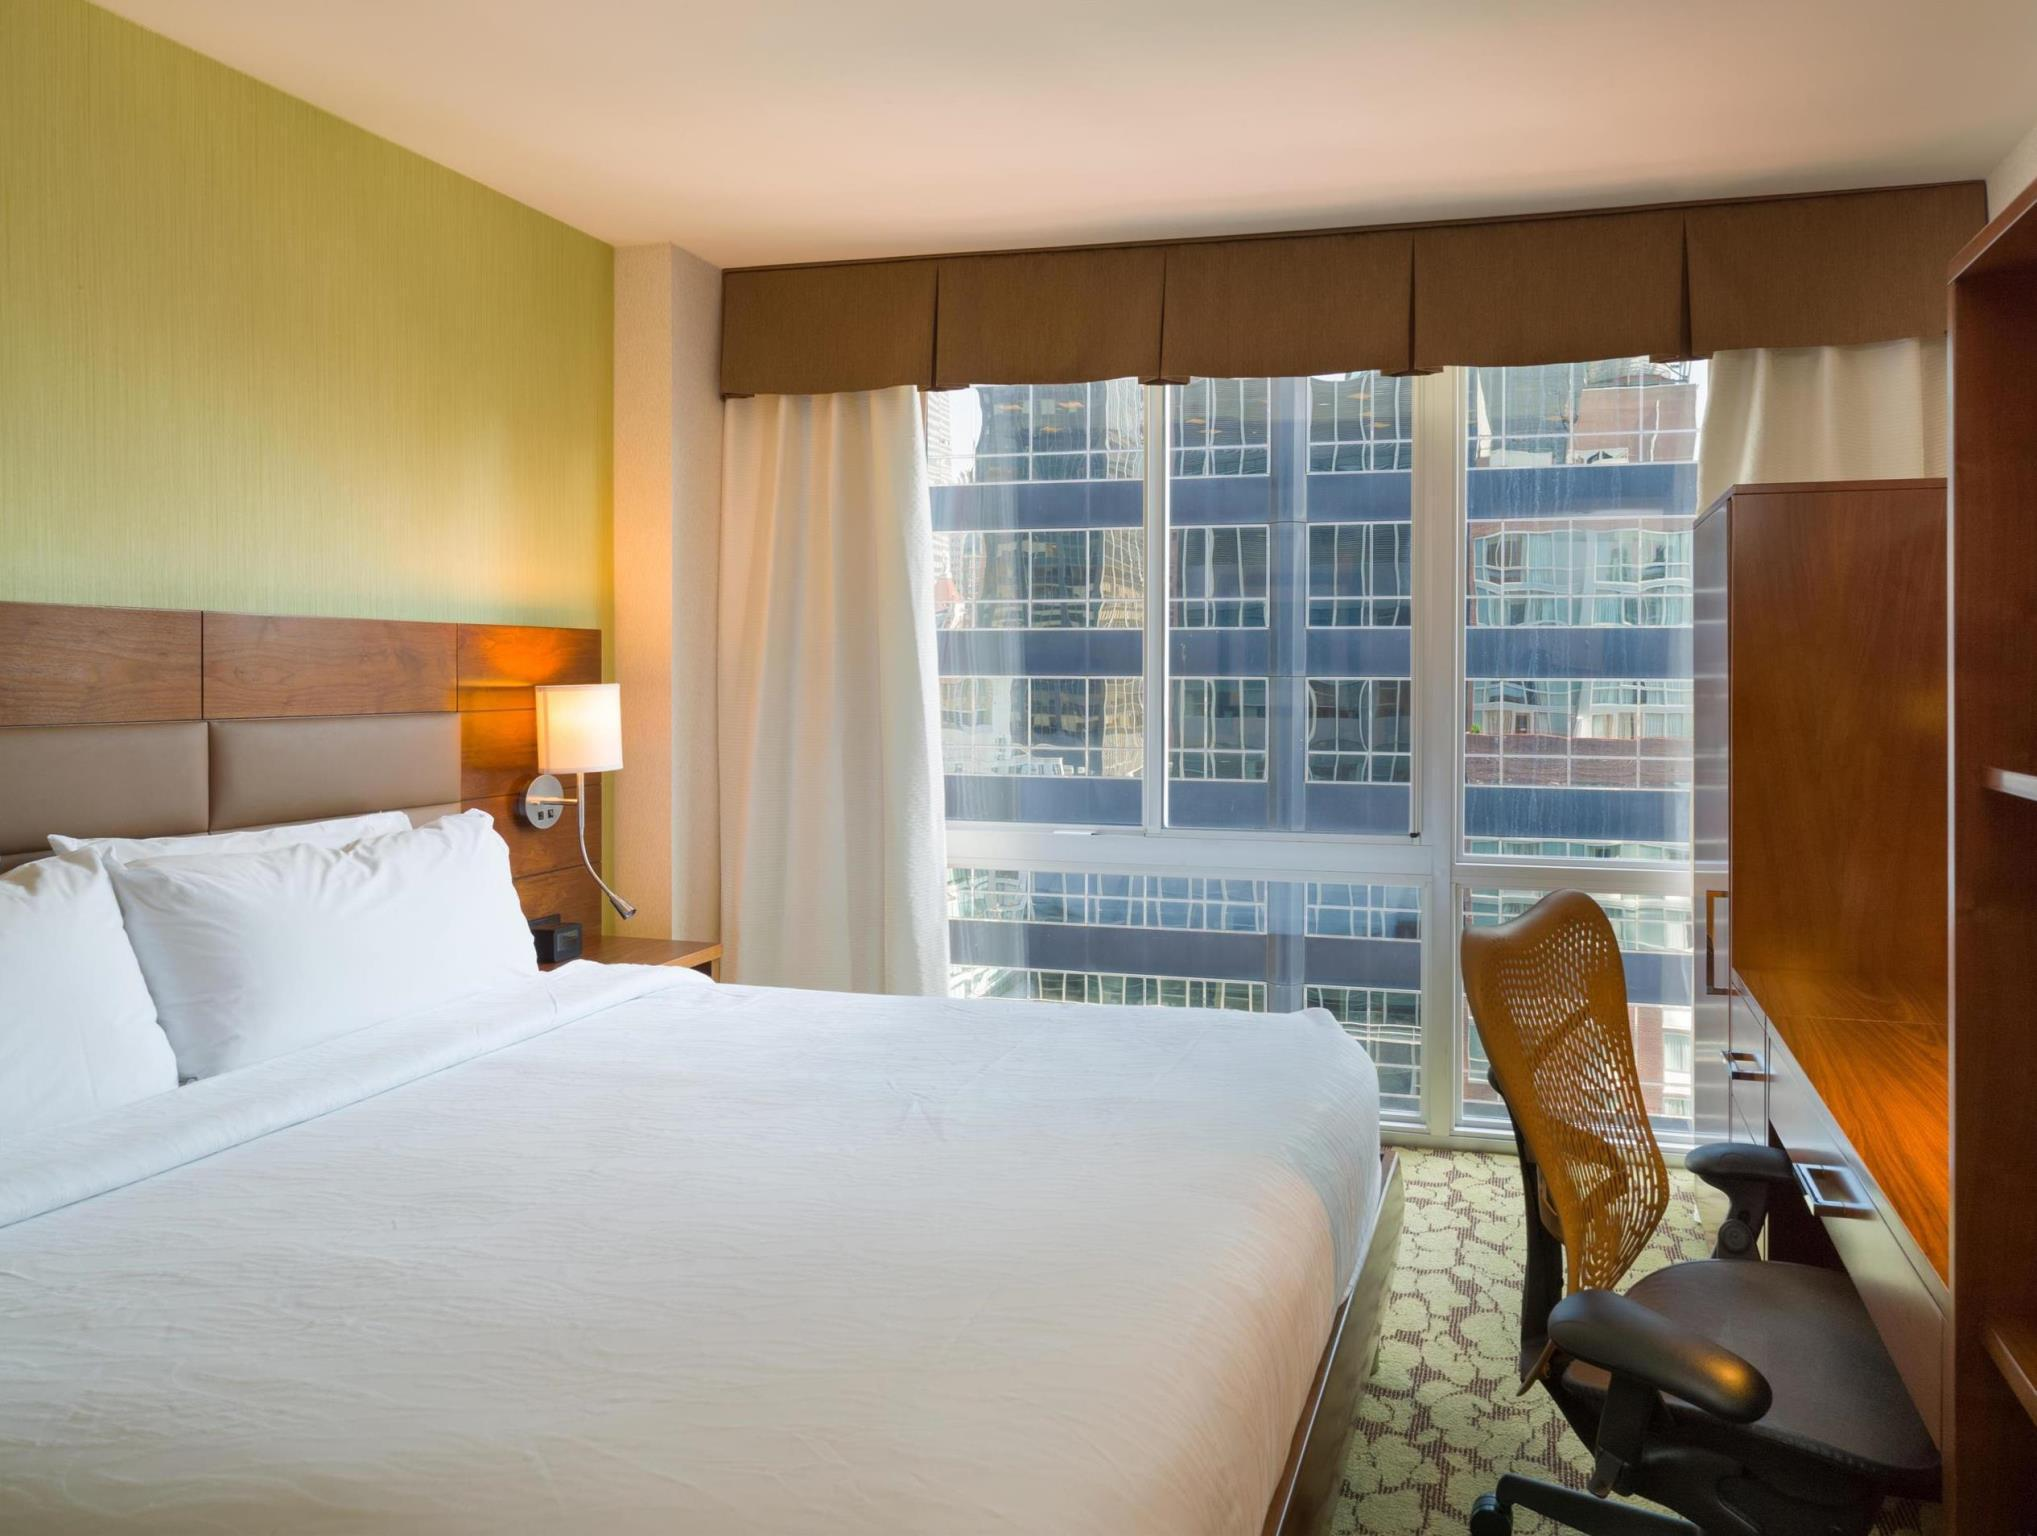 Exceptional More About Hilton Garden Inn New York/Manhattan Midtown East Good Ideas